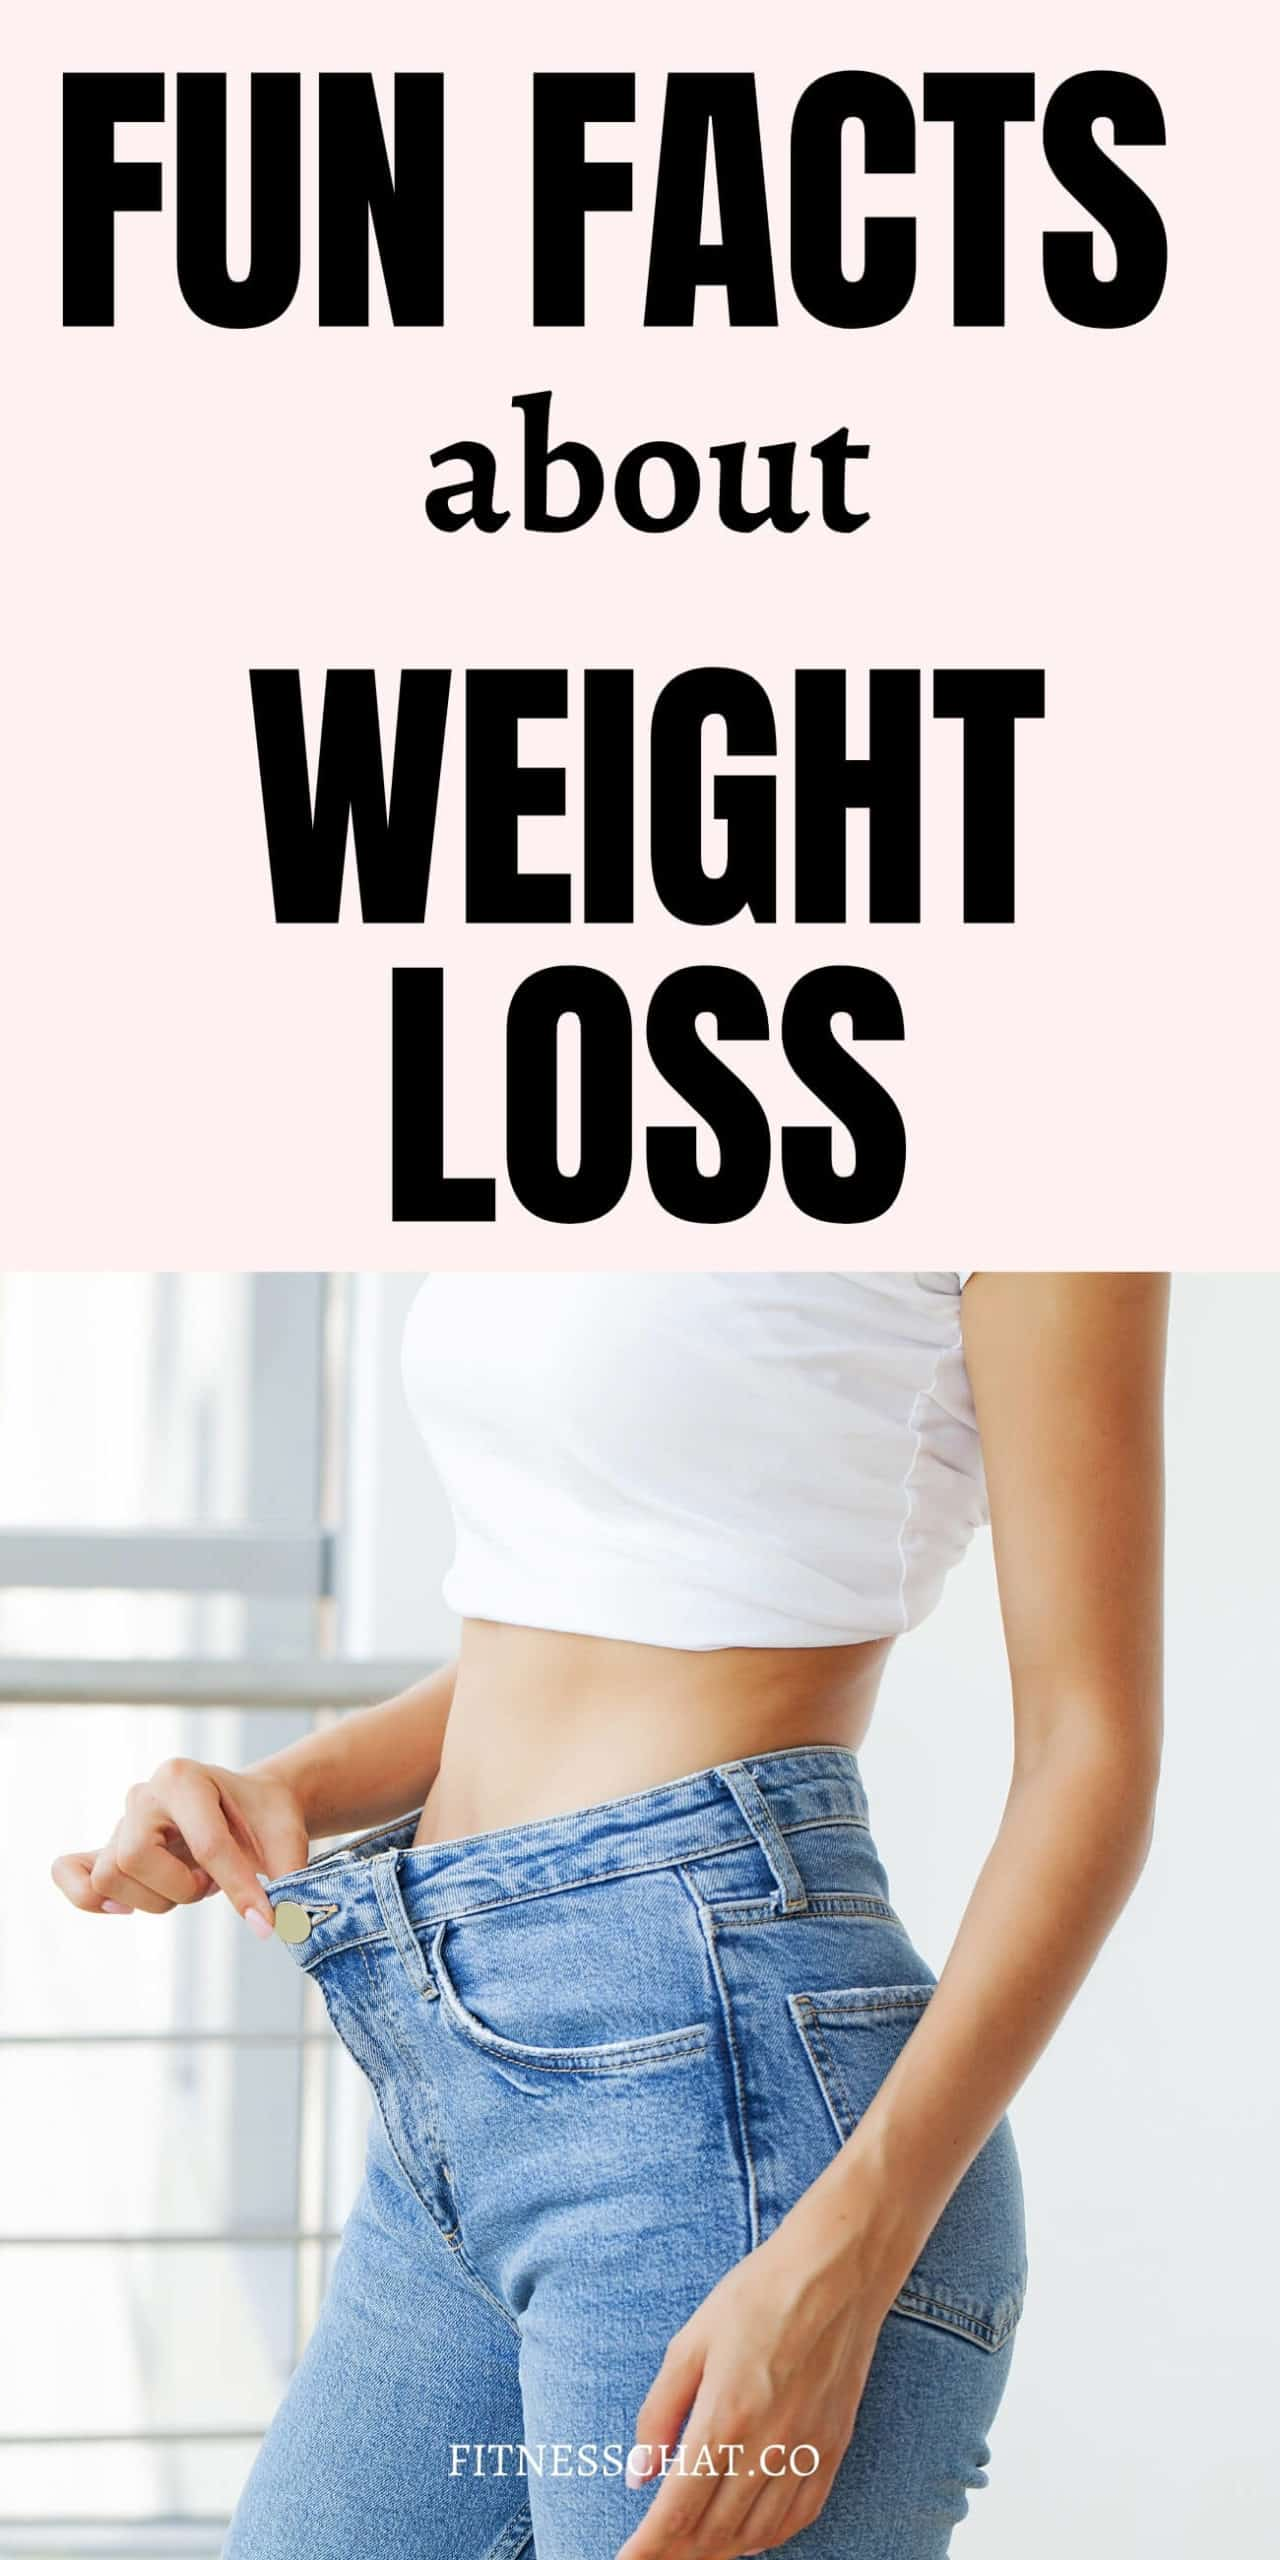 Fun facts about weight loss